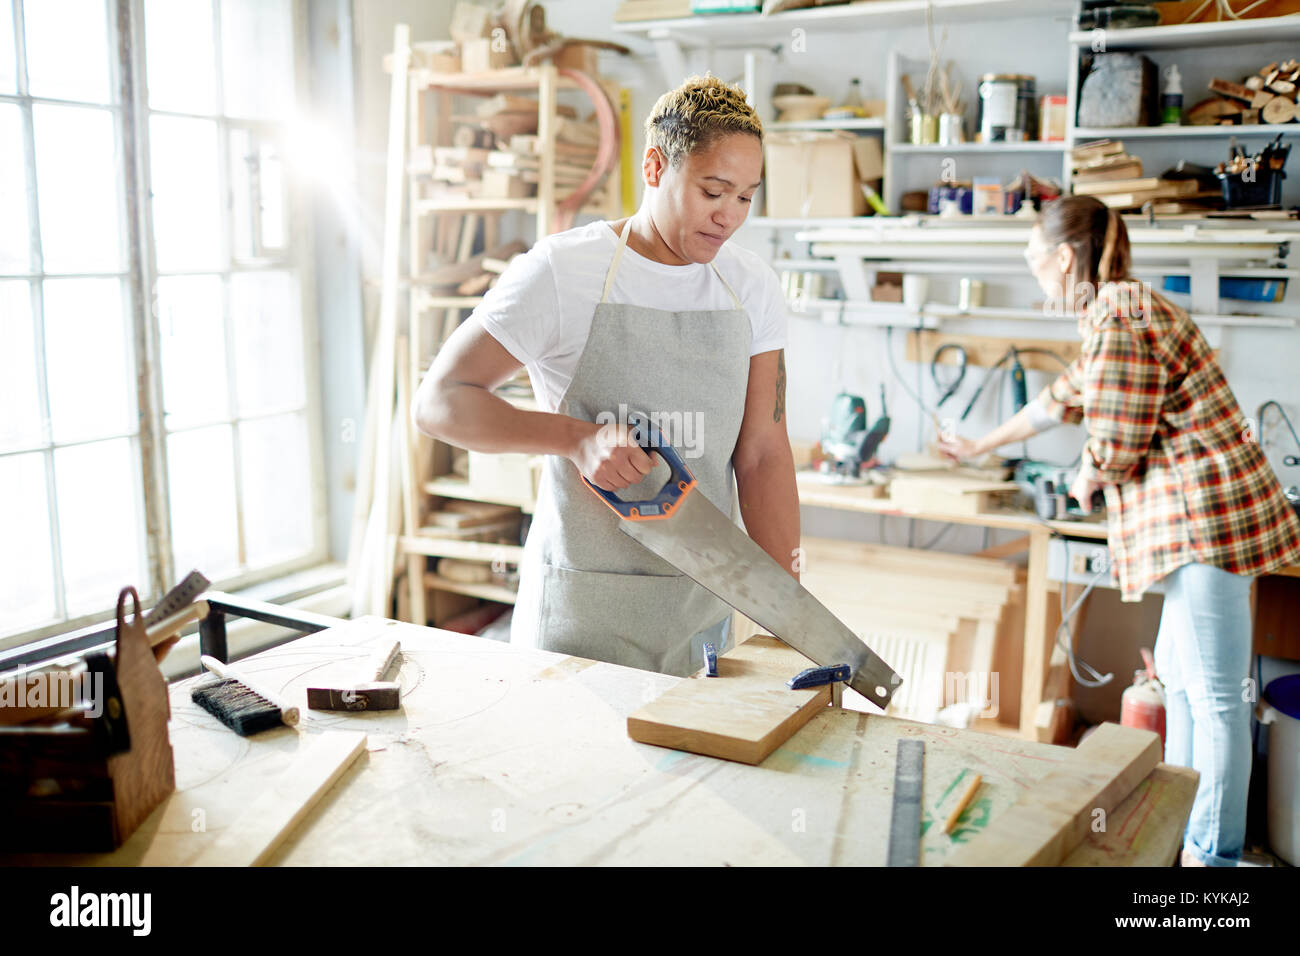 Carpenters in workshop - Stock Image